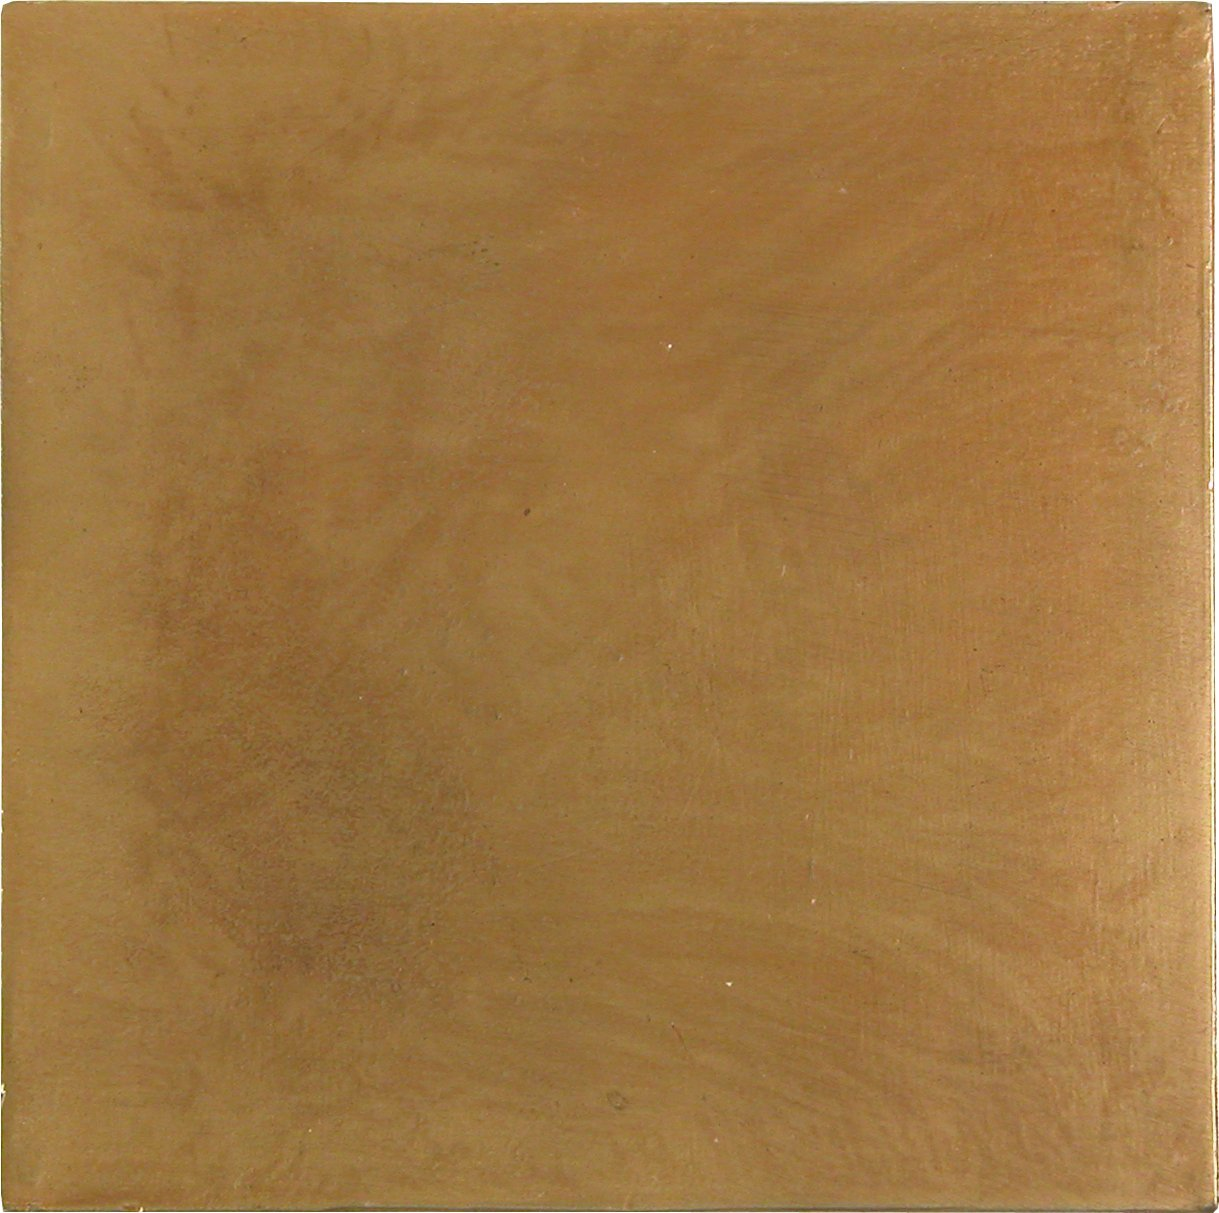 Brass Elegans 29FT-AB Classique Solid Metal 4-Inch X 4-Inch Accent Tile, Durable Antique Brass Finish